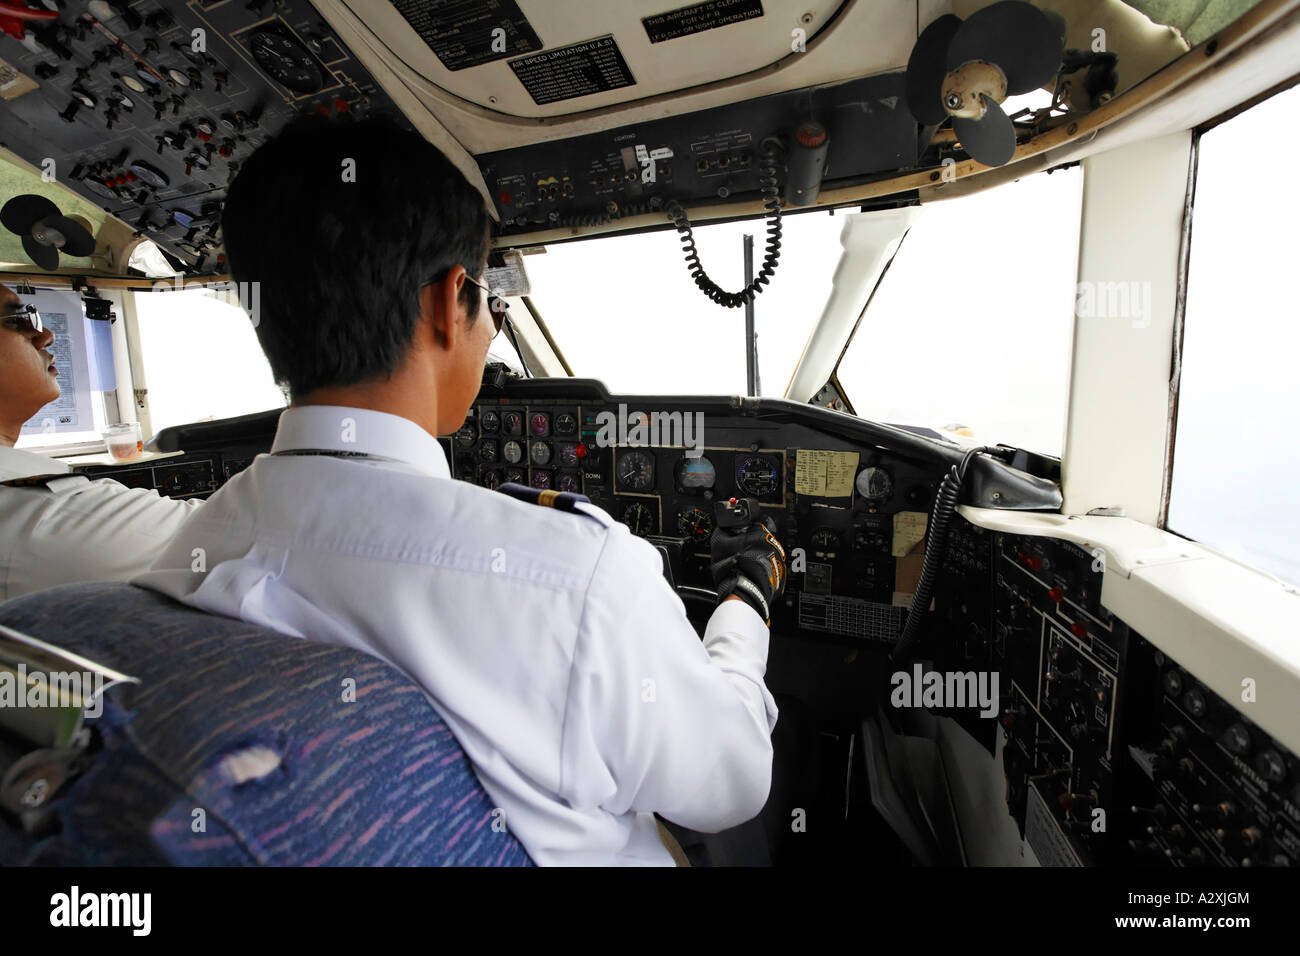 Cockpit of turbo-prop airplane - Stock Image